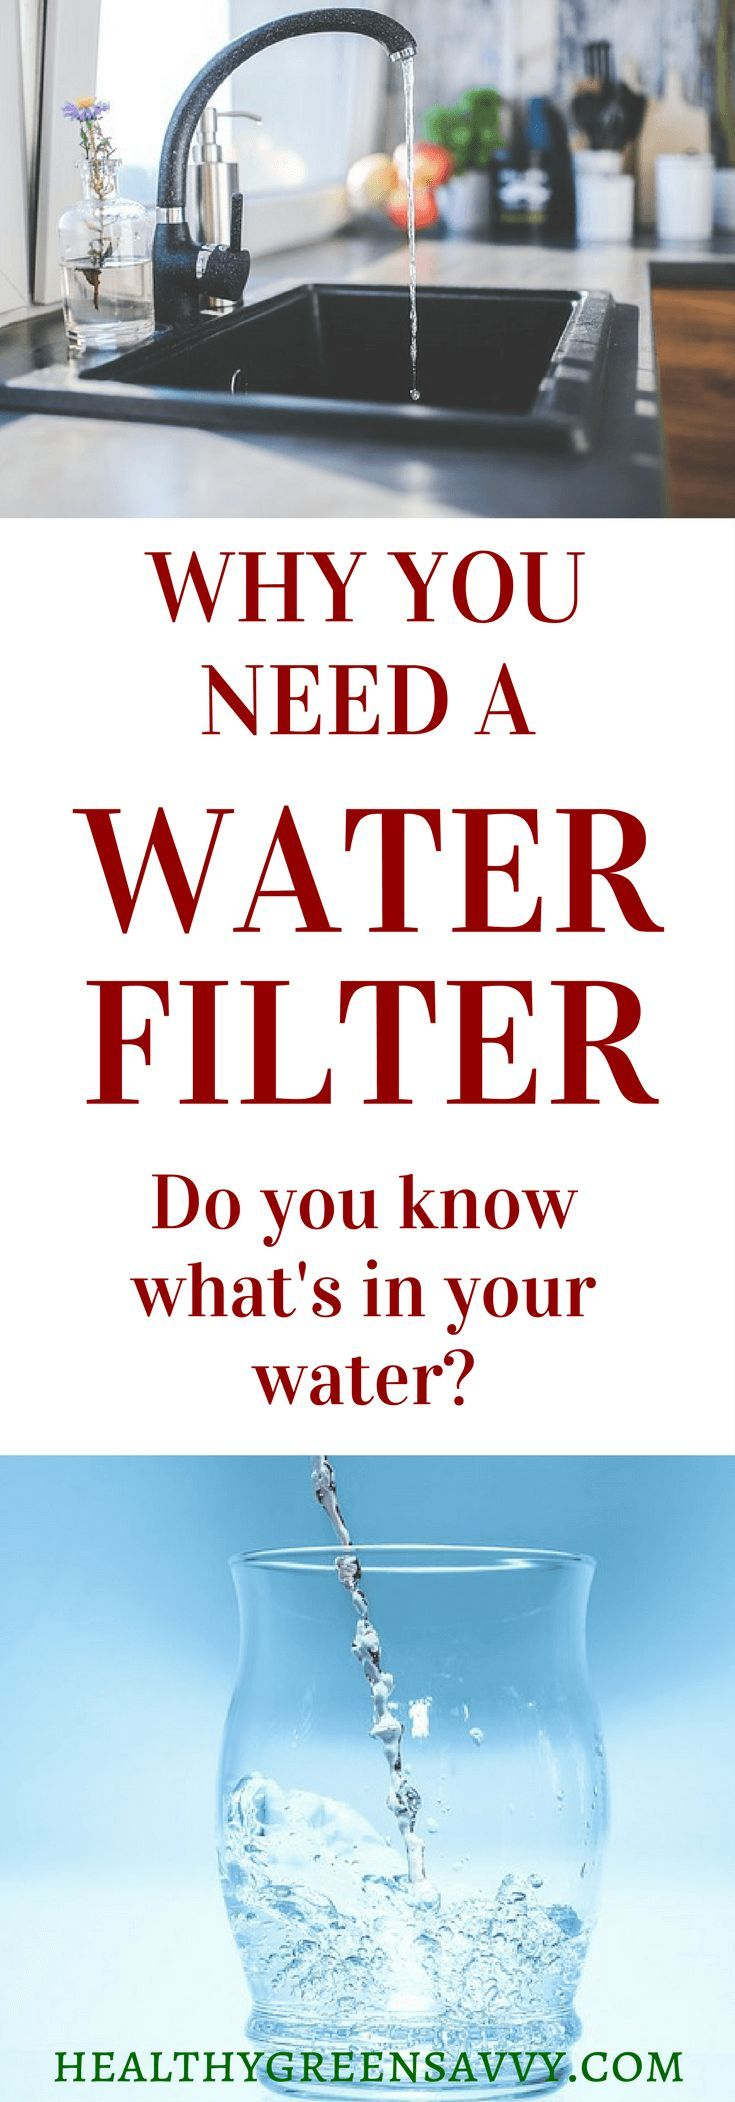 Why You Need a Water Filter: Invisible and dangerous compounds in your water are jeopardizing your health. How to get toxins out of your water.   non-toxic   safe water   best water filters